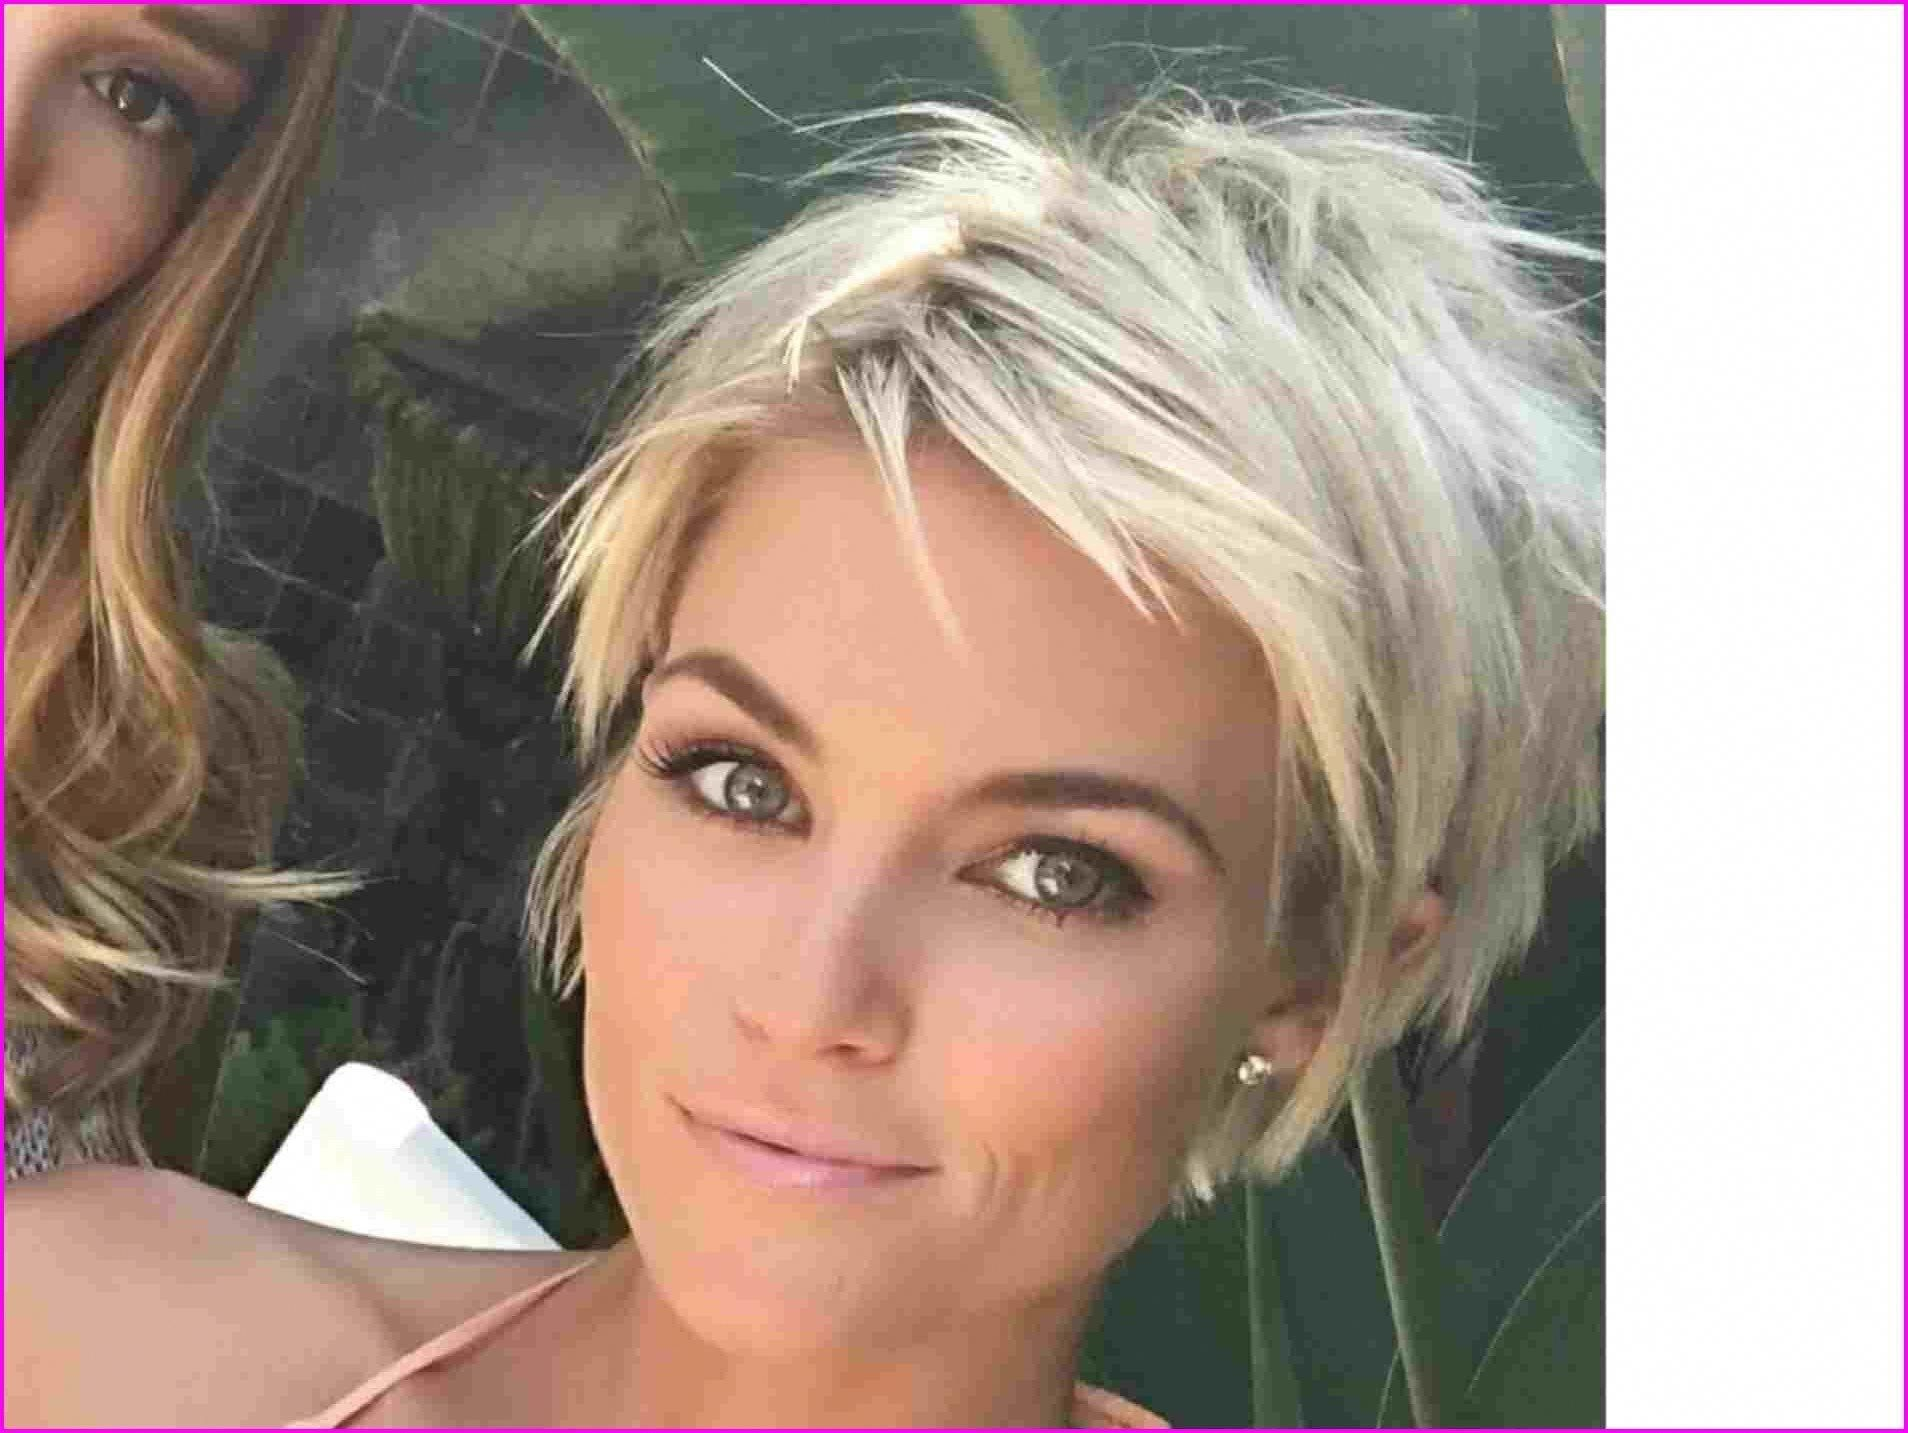 Edgy Short Hairstyles for Women Over 50 - Wass Sell